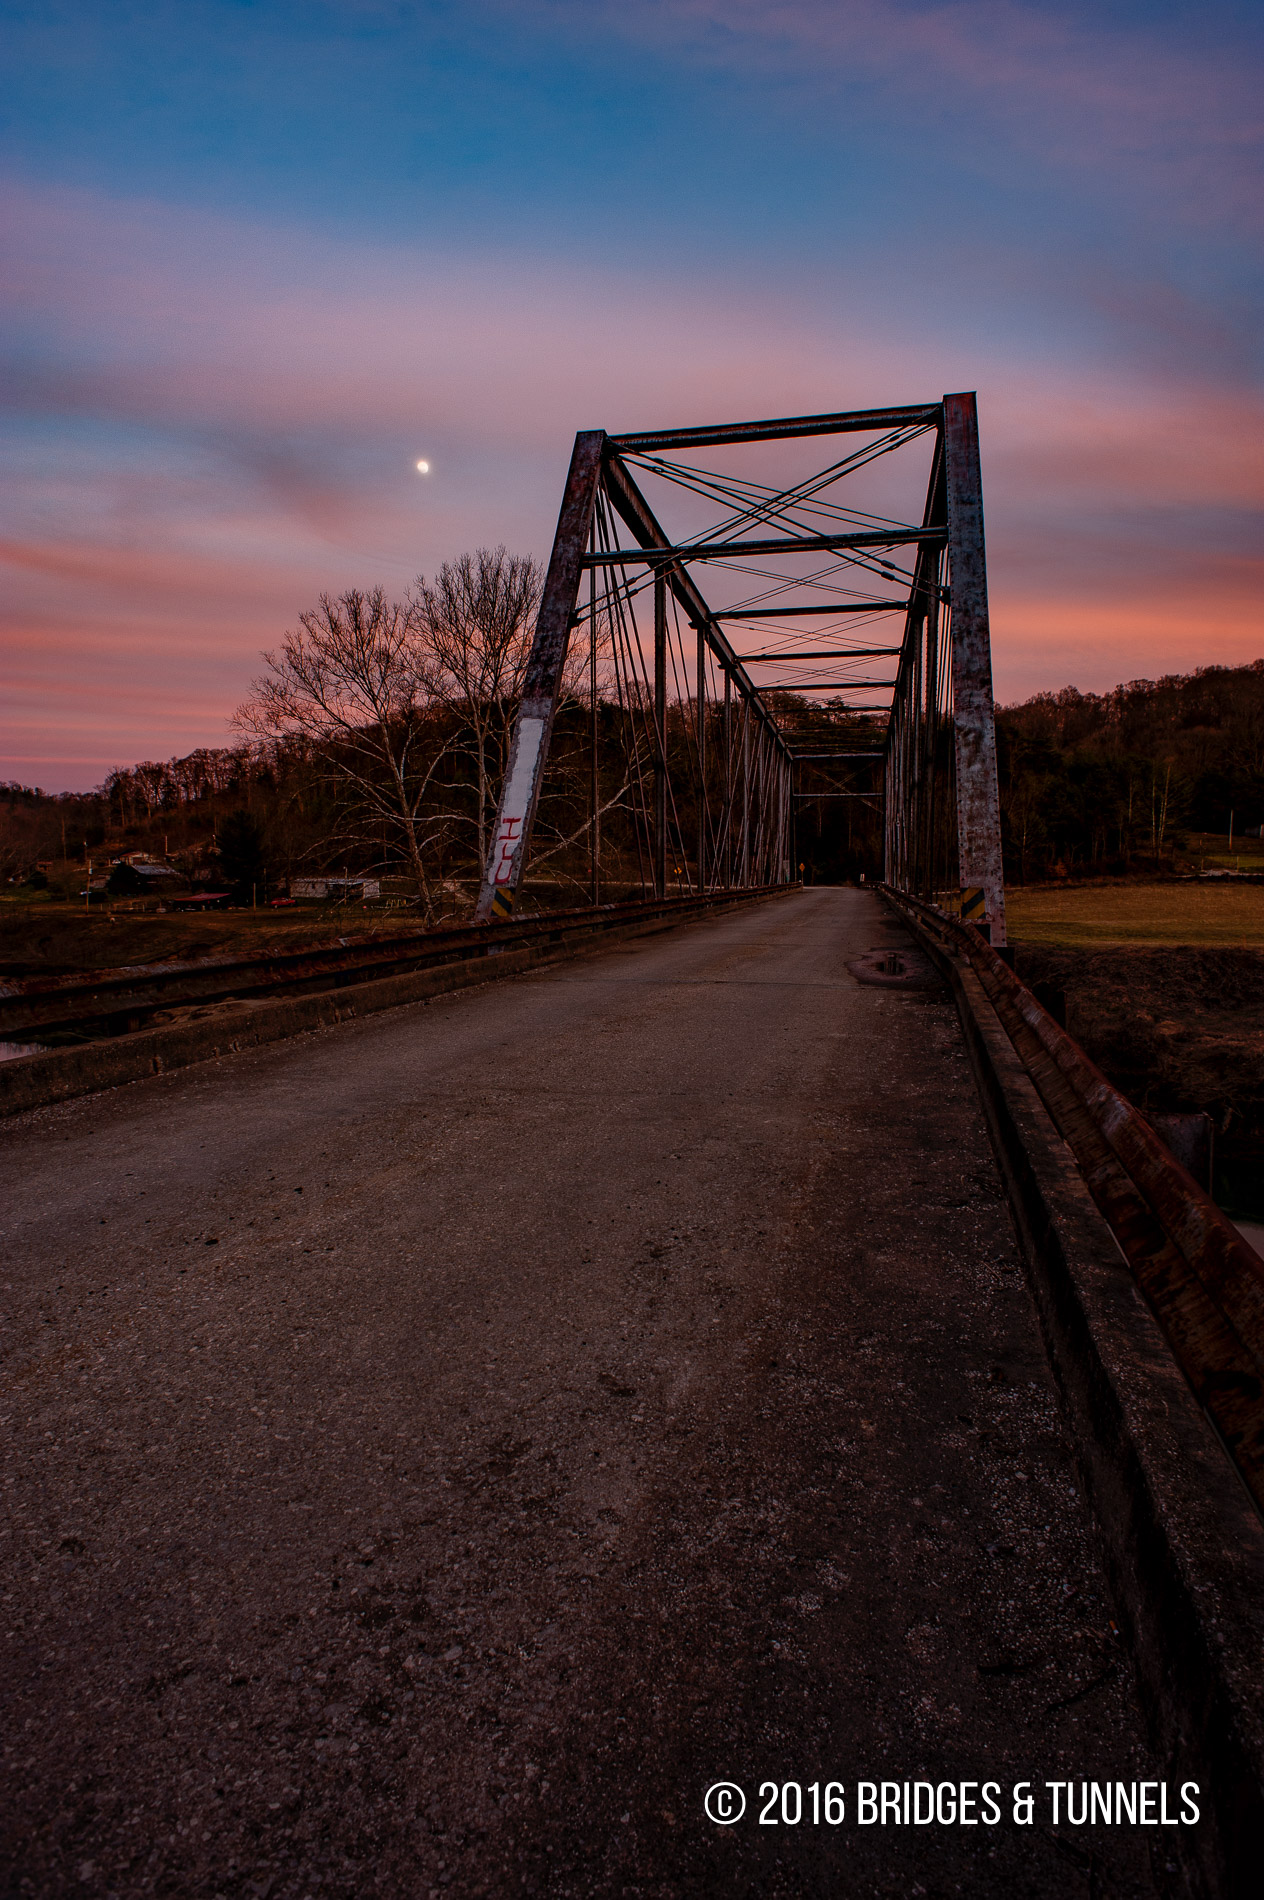 North Fork Kentucky River Bridge (KY 3193)